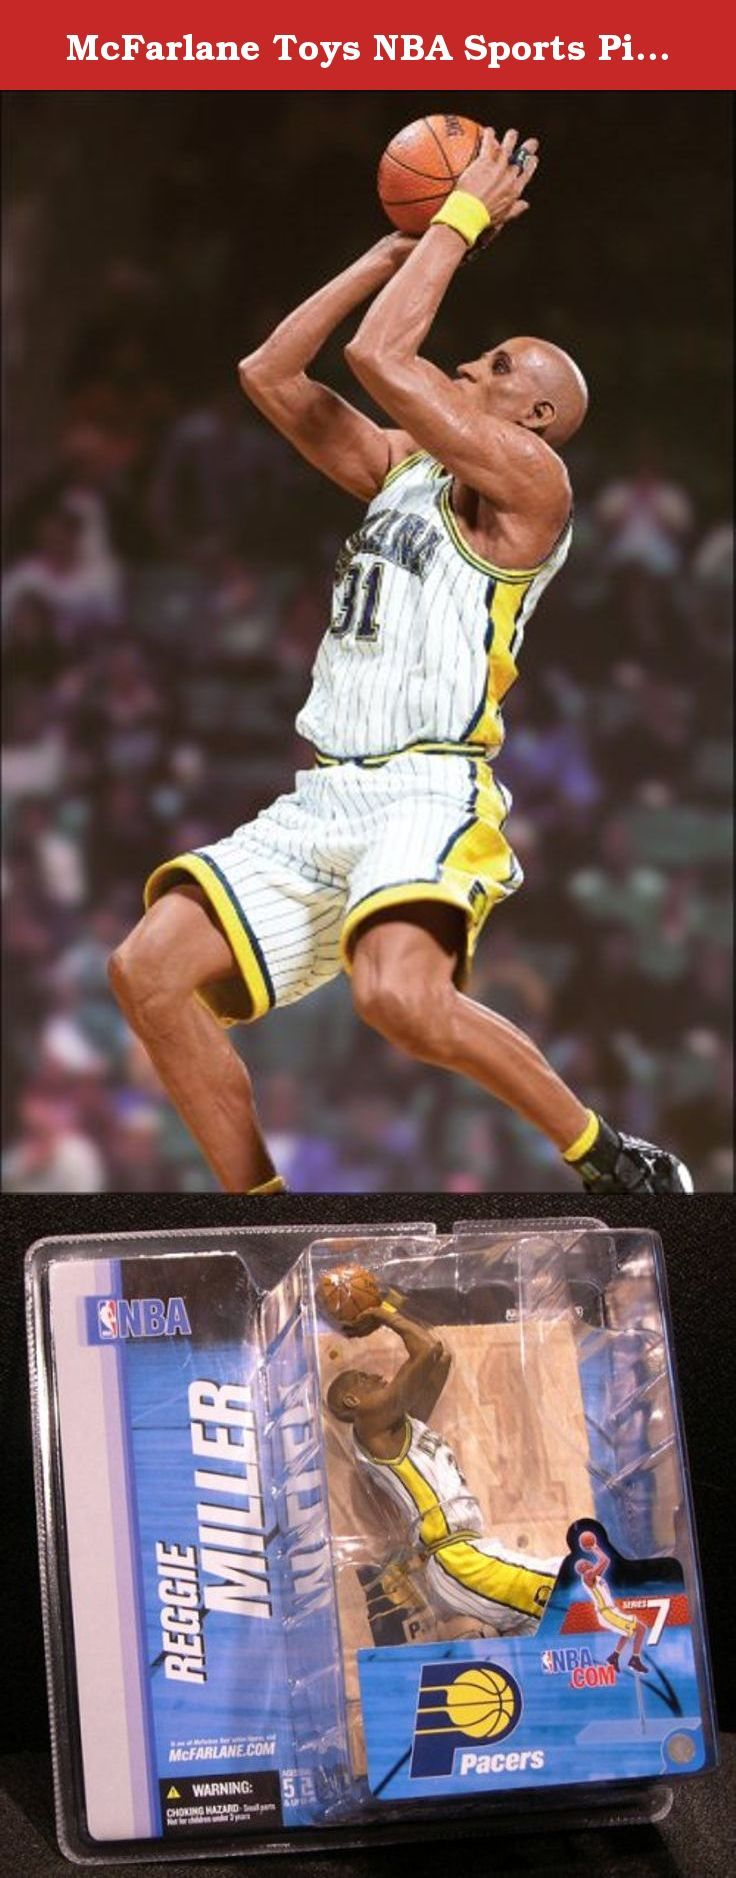 McFarlane Toys NBA Sports Picks Series 7 Action Figure Reggie Miller Yellow J. 6 inch Mcfarlane action figure - Reggie Miller in a jump shot pose, in a white and yellow Indiana Pacers jersey.